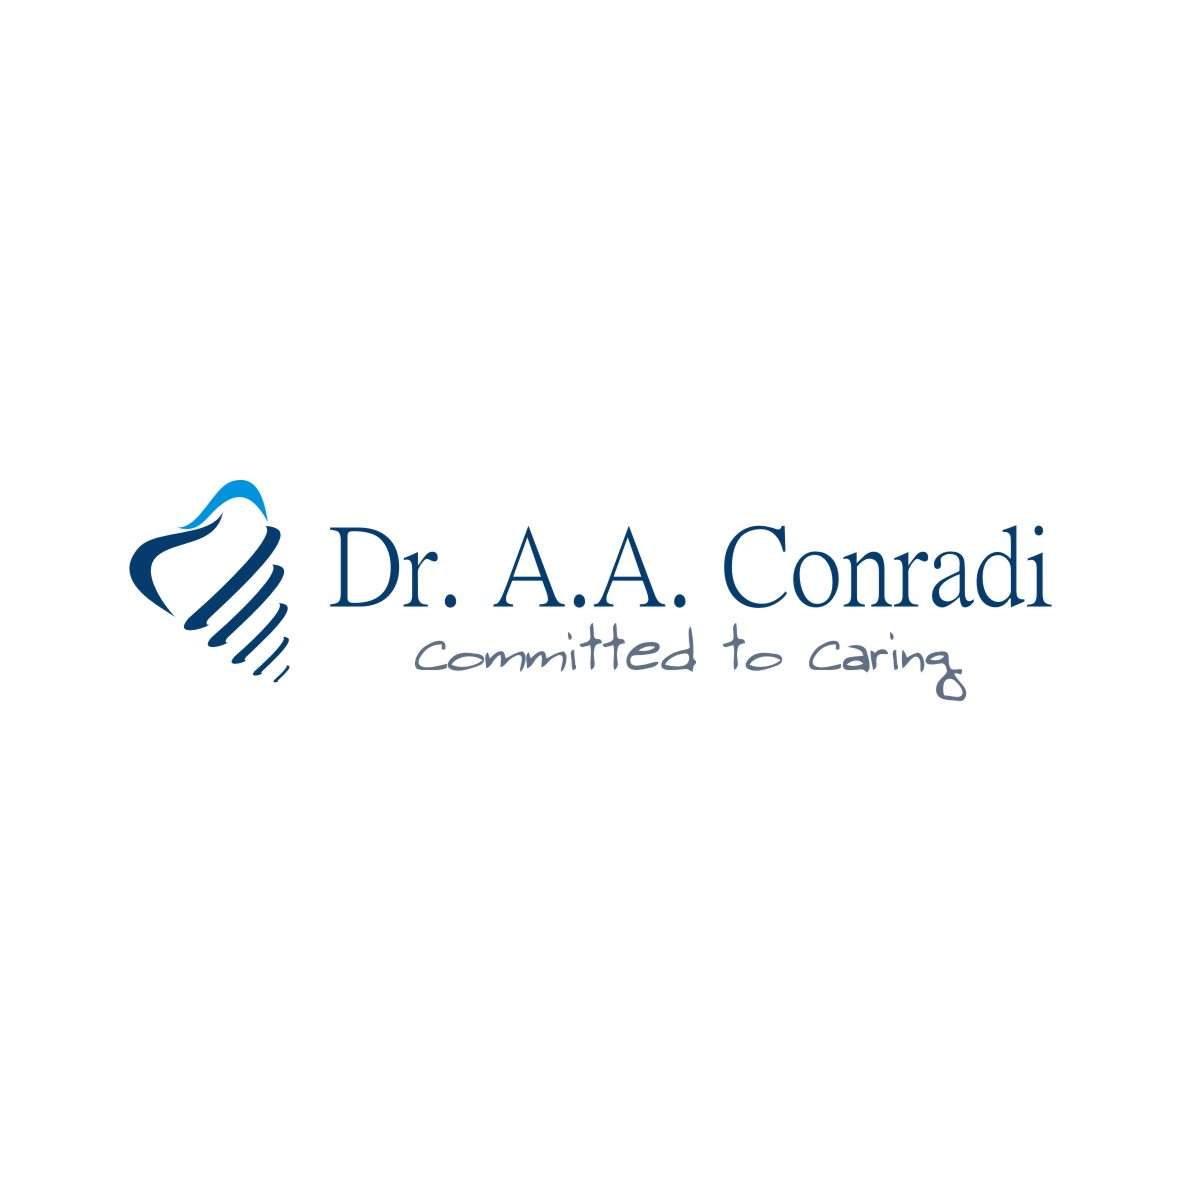 Logo Design by arteo_design - Entry No. 133 in the Logo Design Contest Unique Logo Design Wanted for Dr. A.A. Conradi.